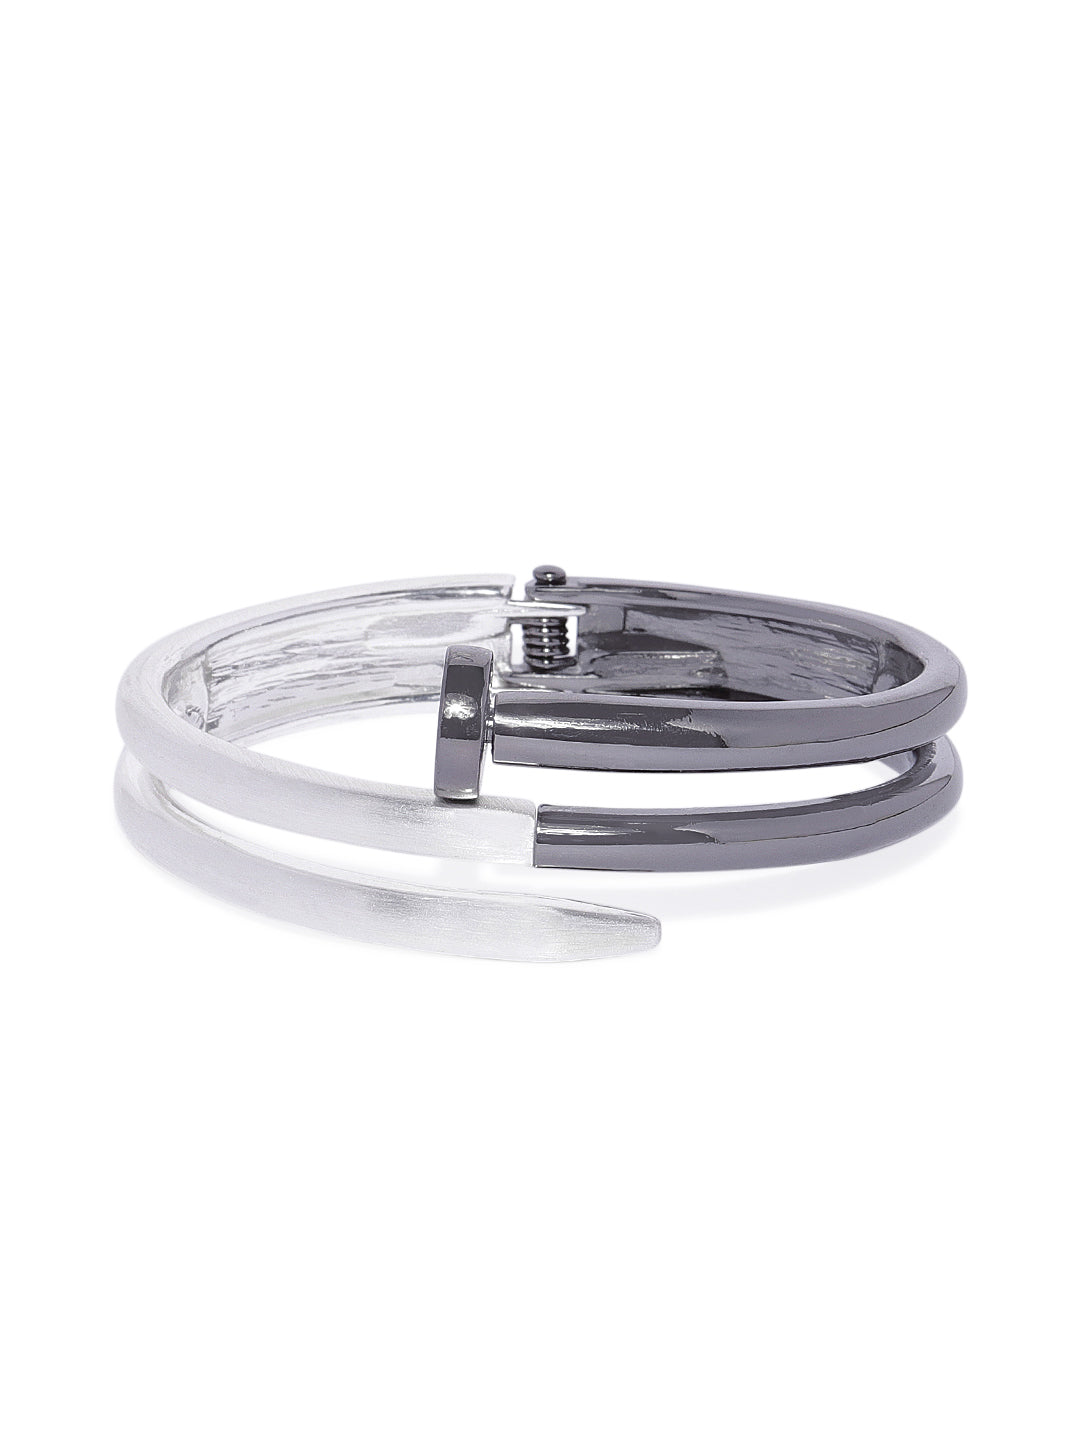 Nail Cuff in Black and Silver - ChicMela